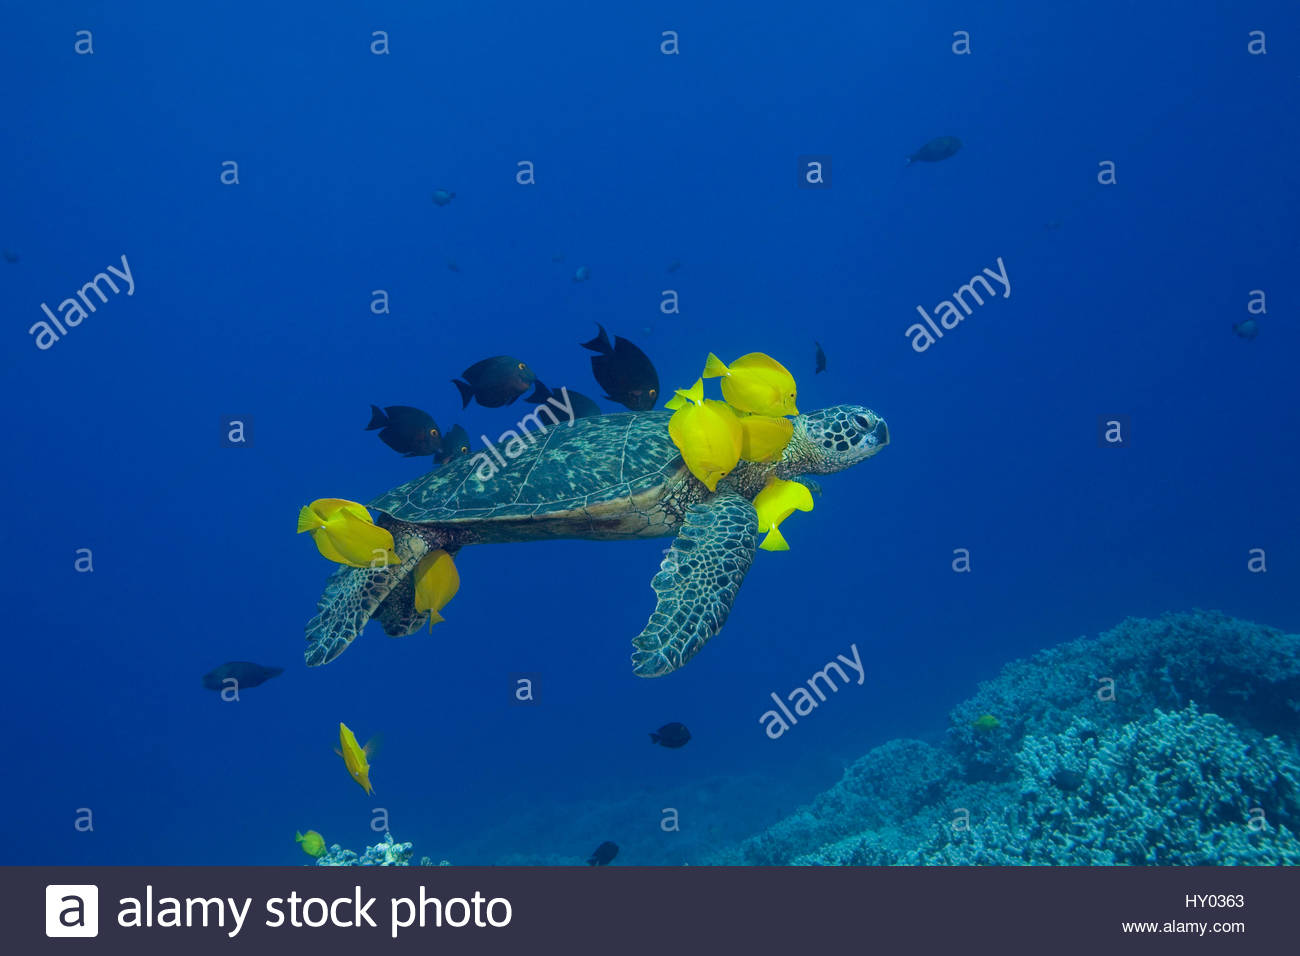 Green sea turtle (Chelonia mydas) being cleaned by herbivorous cleaner fish species Yellow tangs (Zebrasoma flavescens) - Stock Image